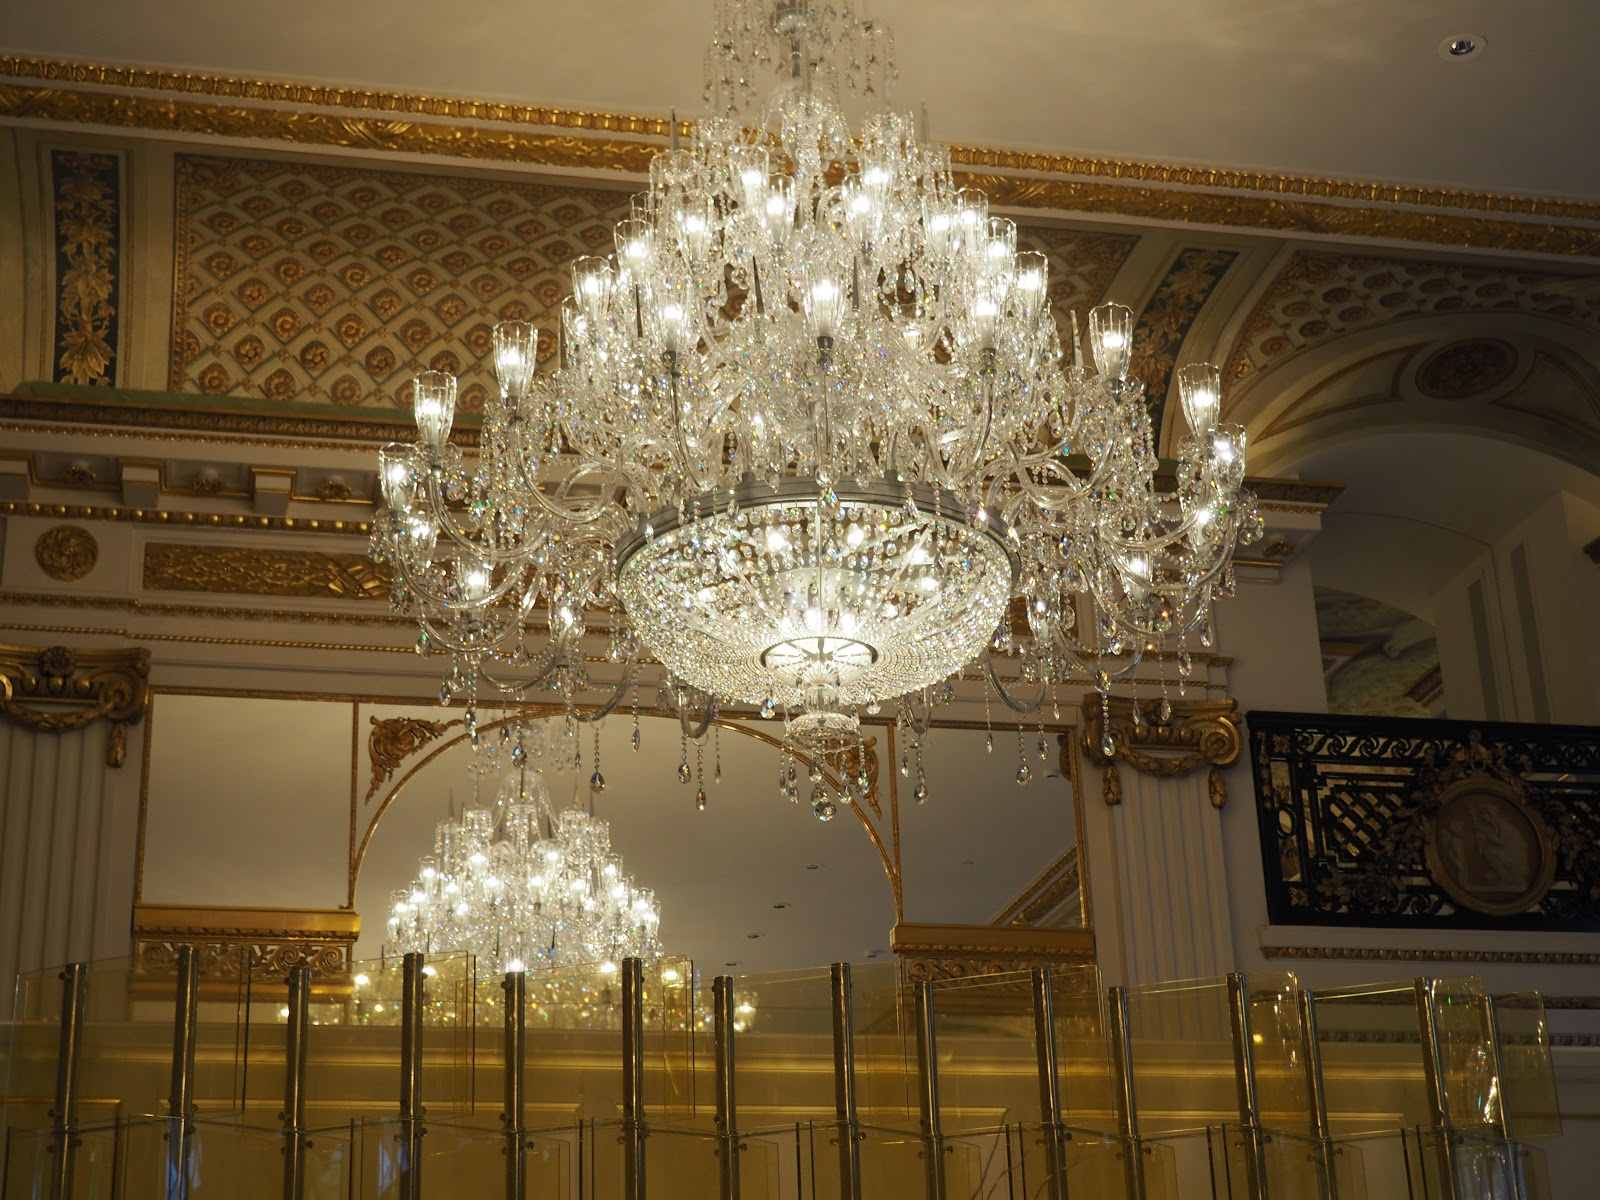 Peninsula Hotel, Paris, Afternoon Tea in the lobby, chandelier